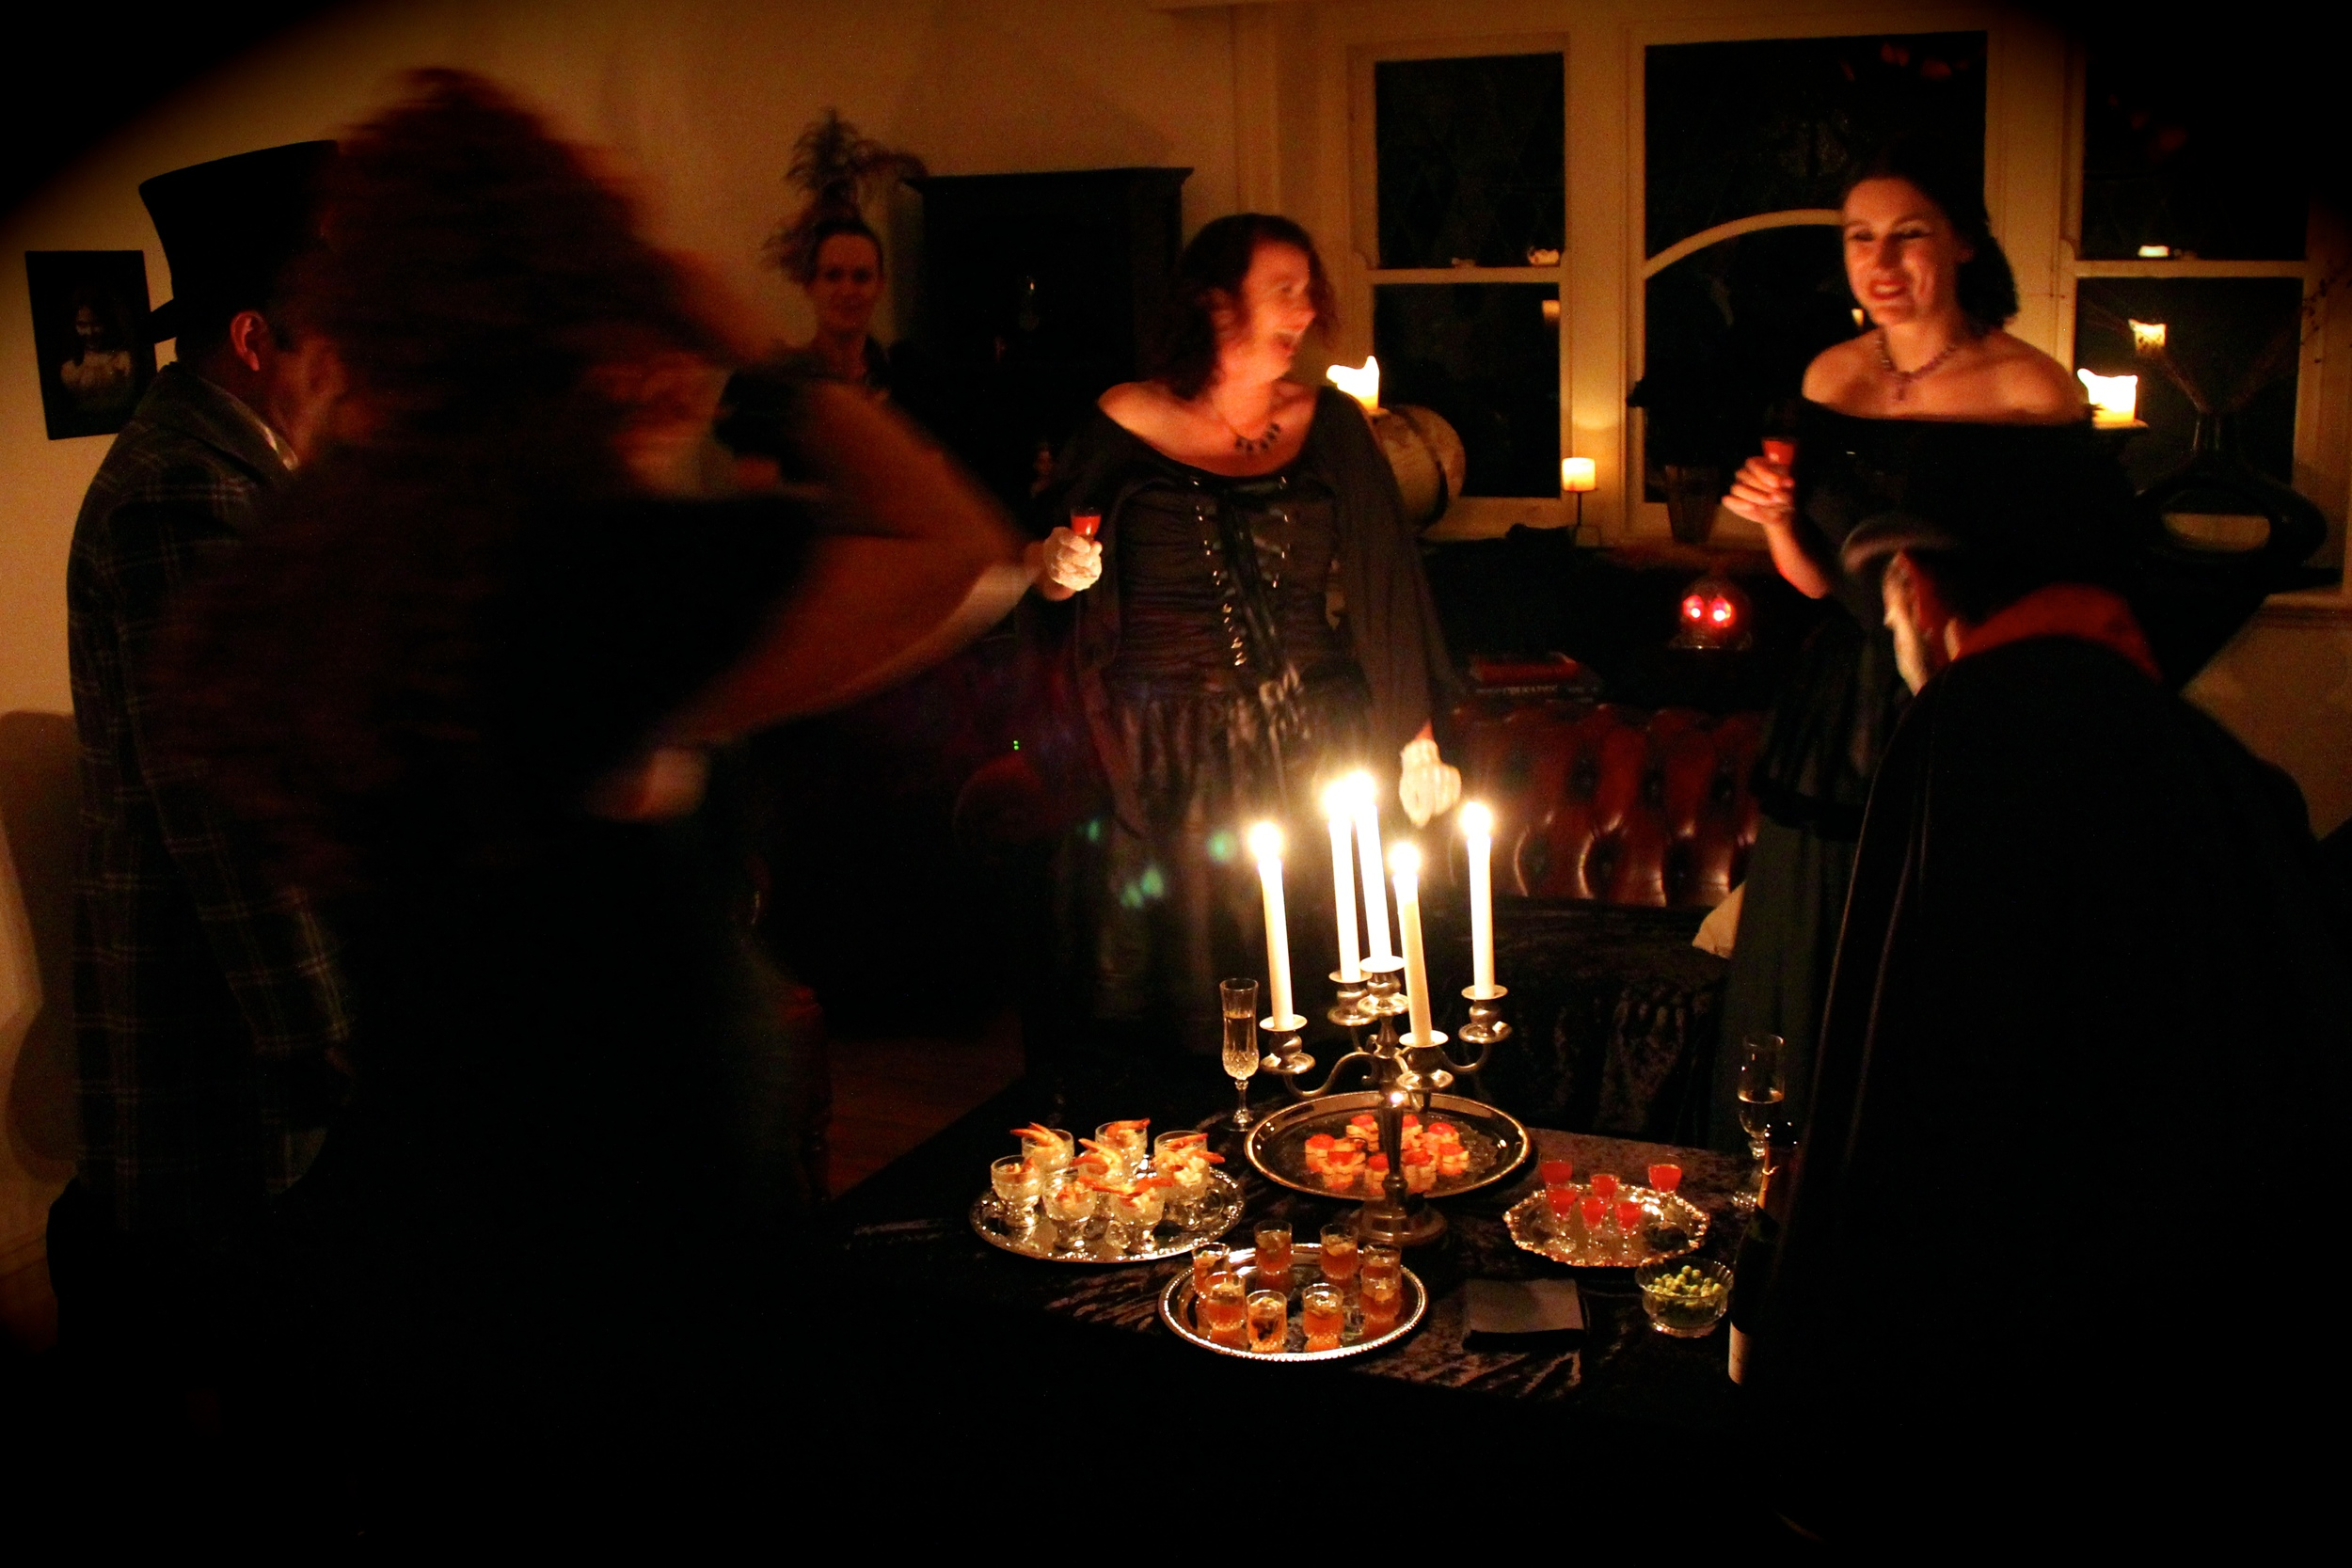 Gothic Dinner party - party in action